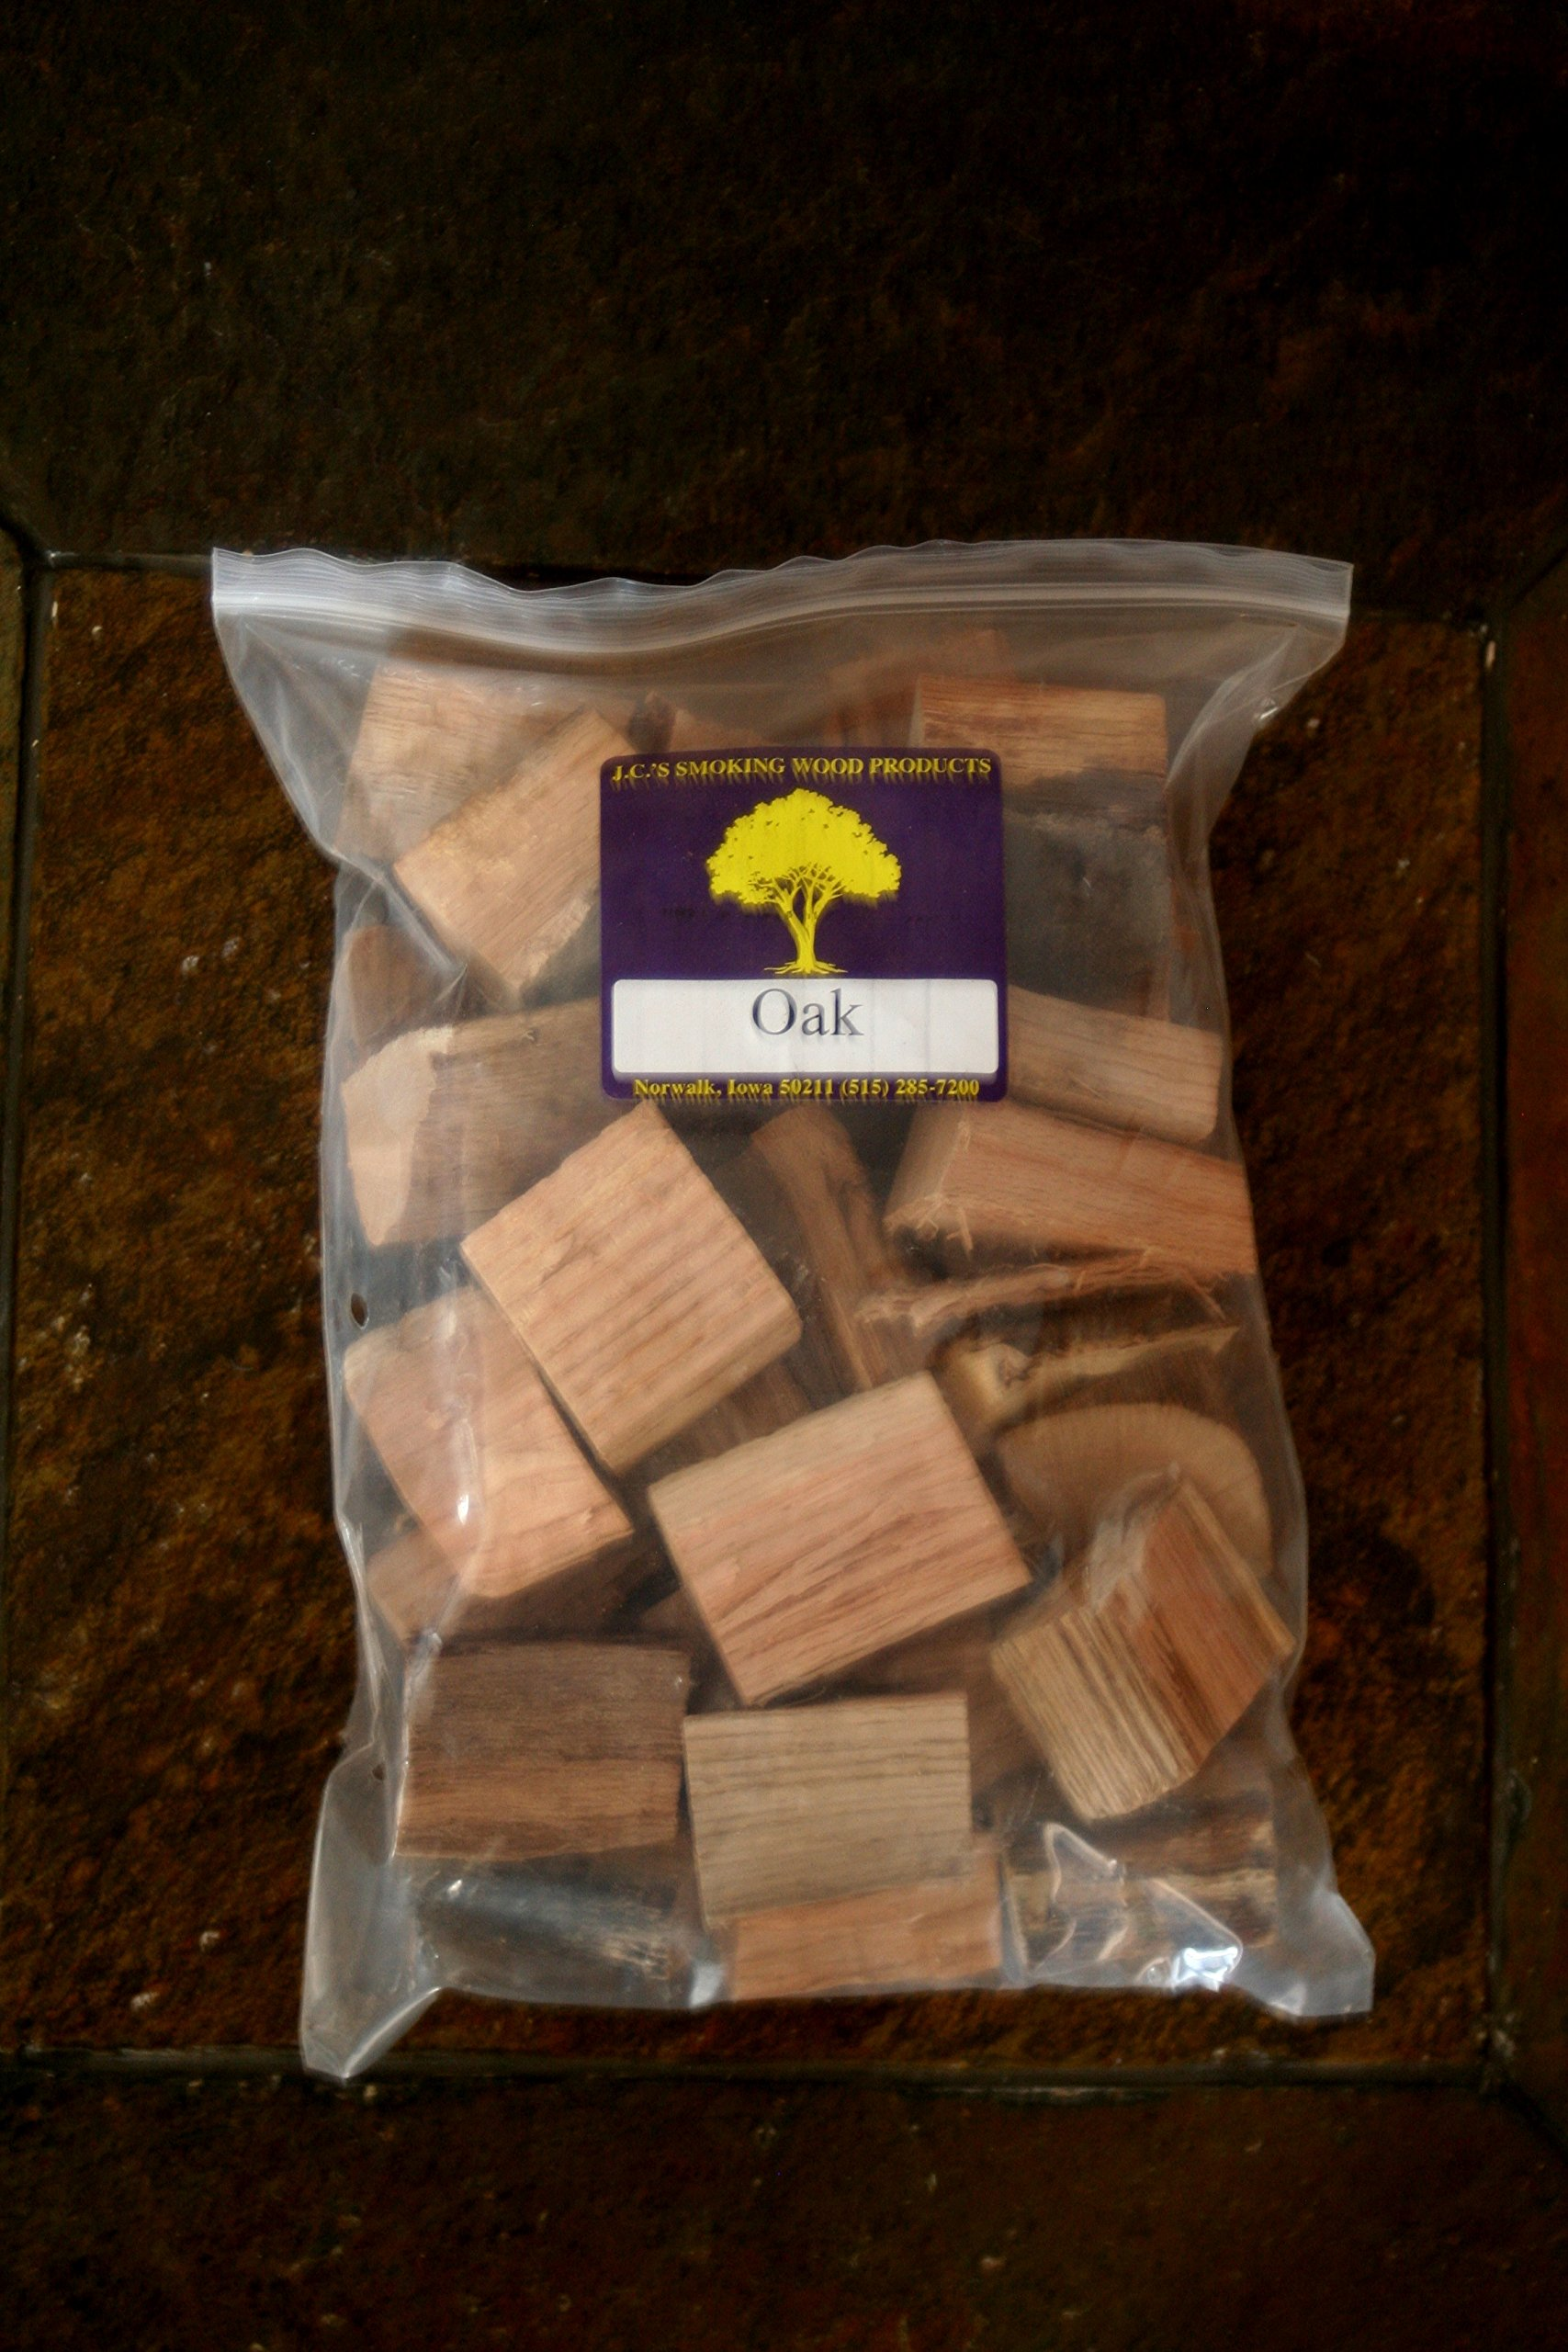 J.C.'s Smoking Wood Chunks - Gallon Sized bag - Oak by J.C.'s Smoking Wood Products